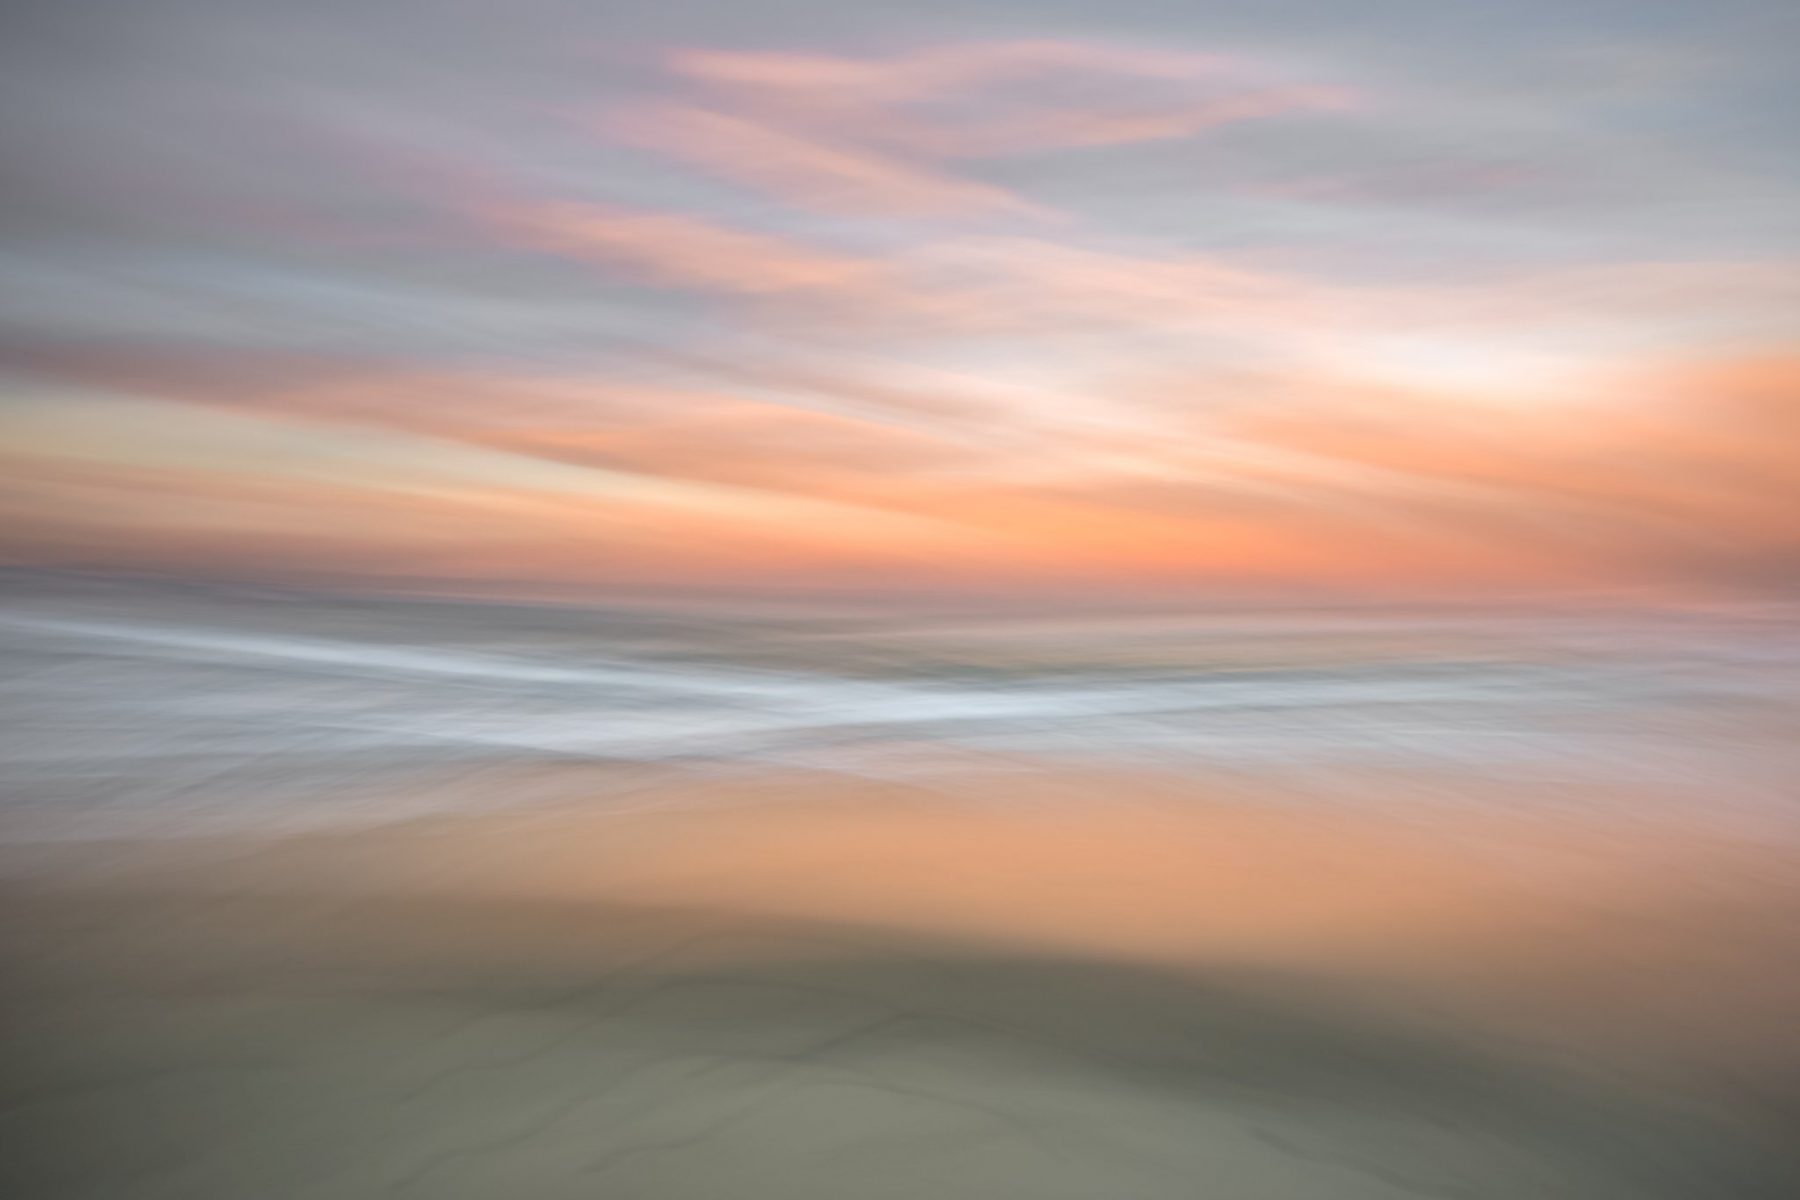 1st - Alexander S. Kunz - Morning Pastels in Motion